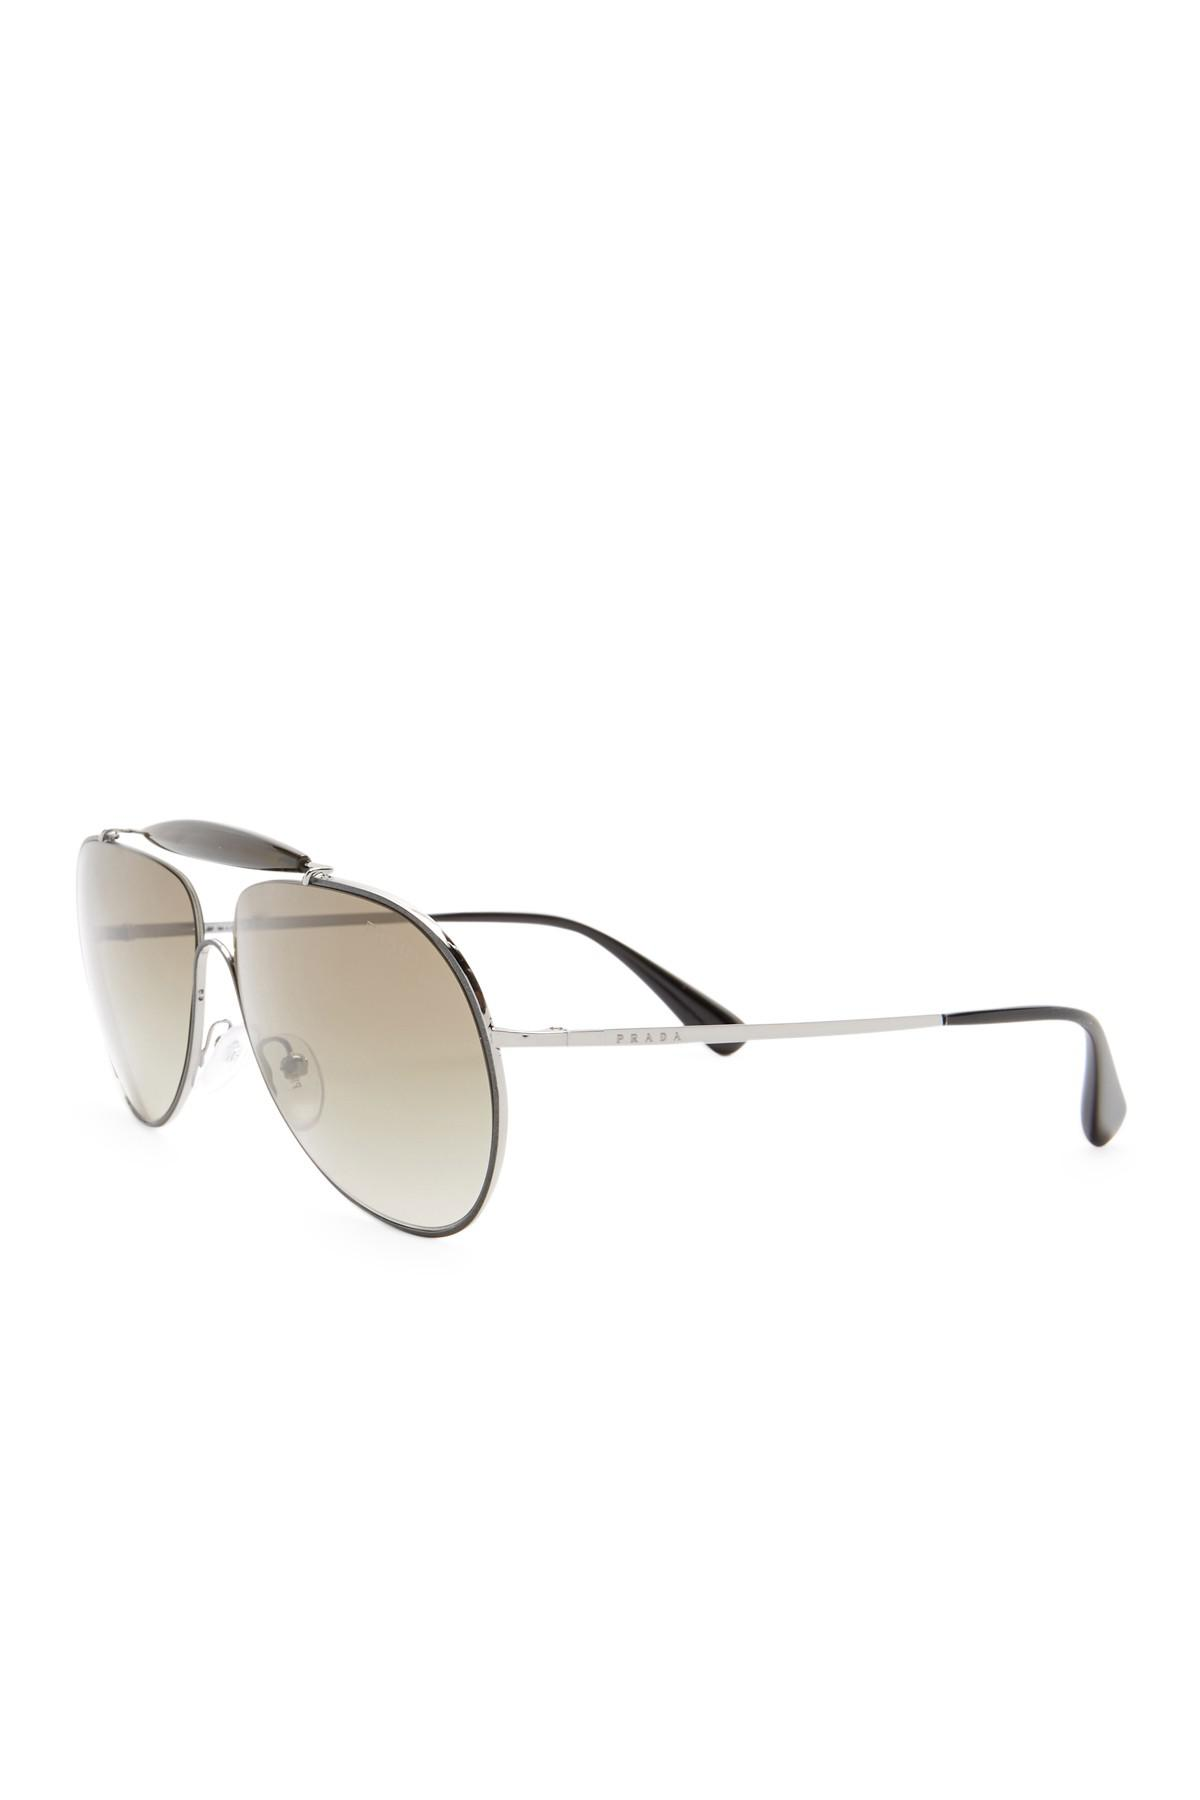 06a8ce67b7dc Gallery. Previously sold at  Nordstrom Rack · Women s Polarized Sunglasses  ...